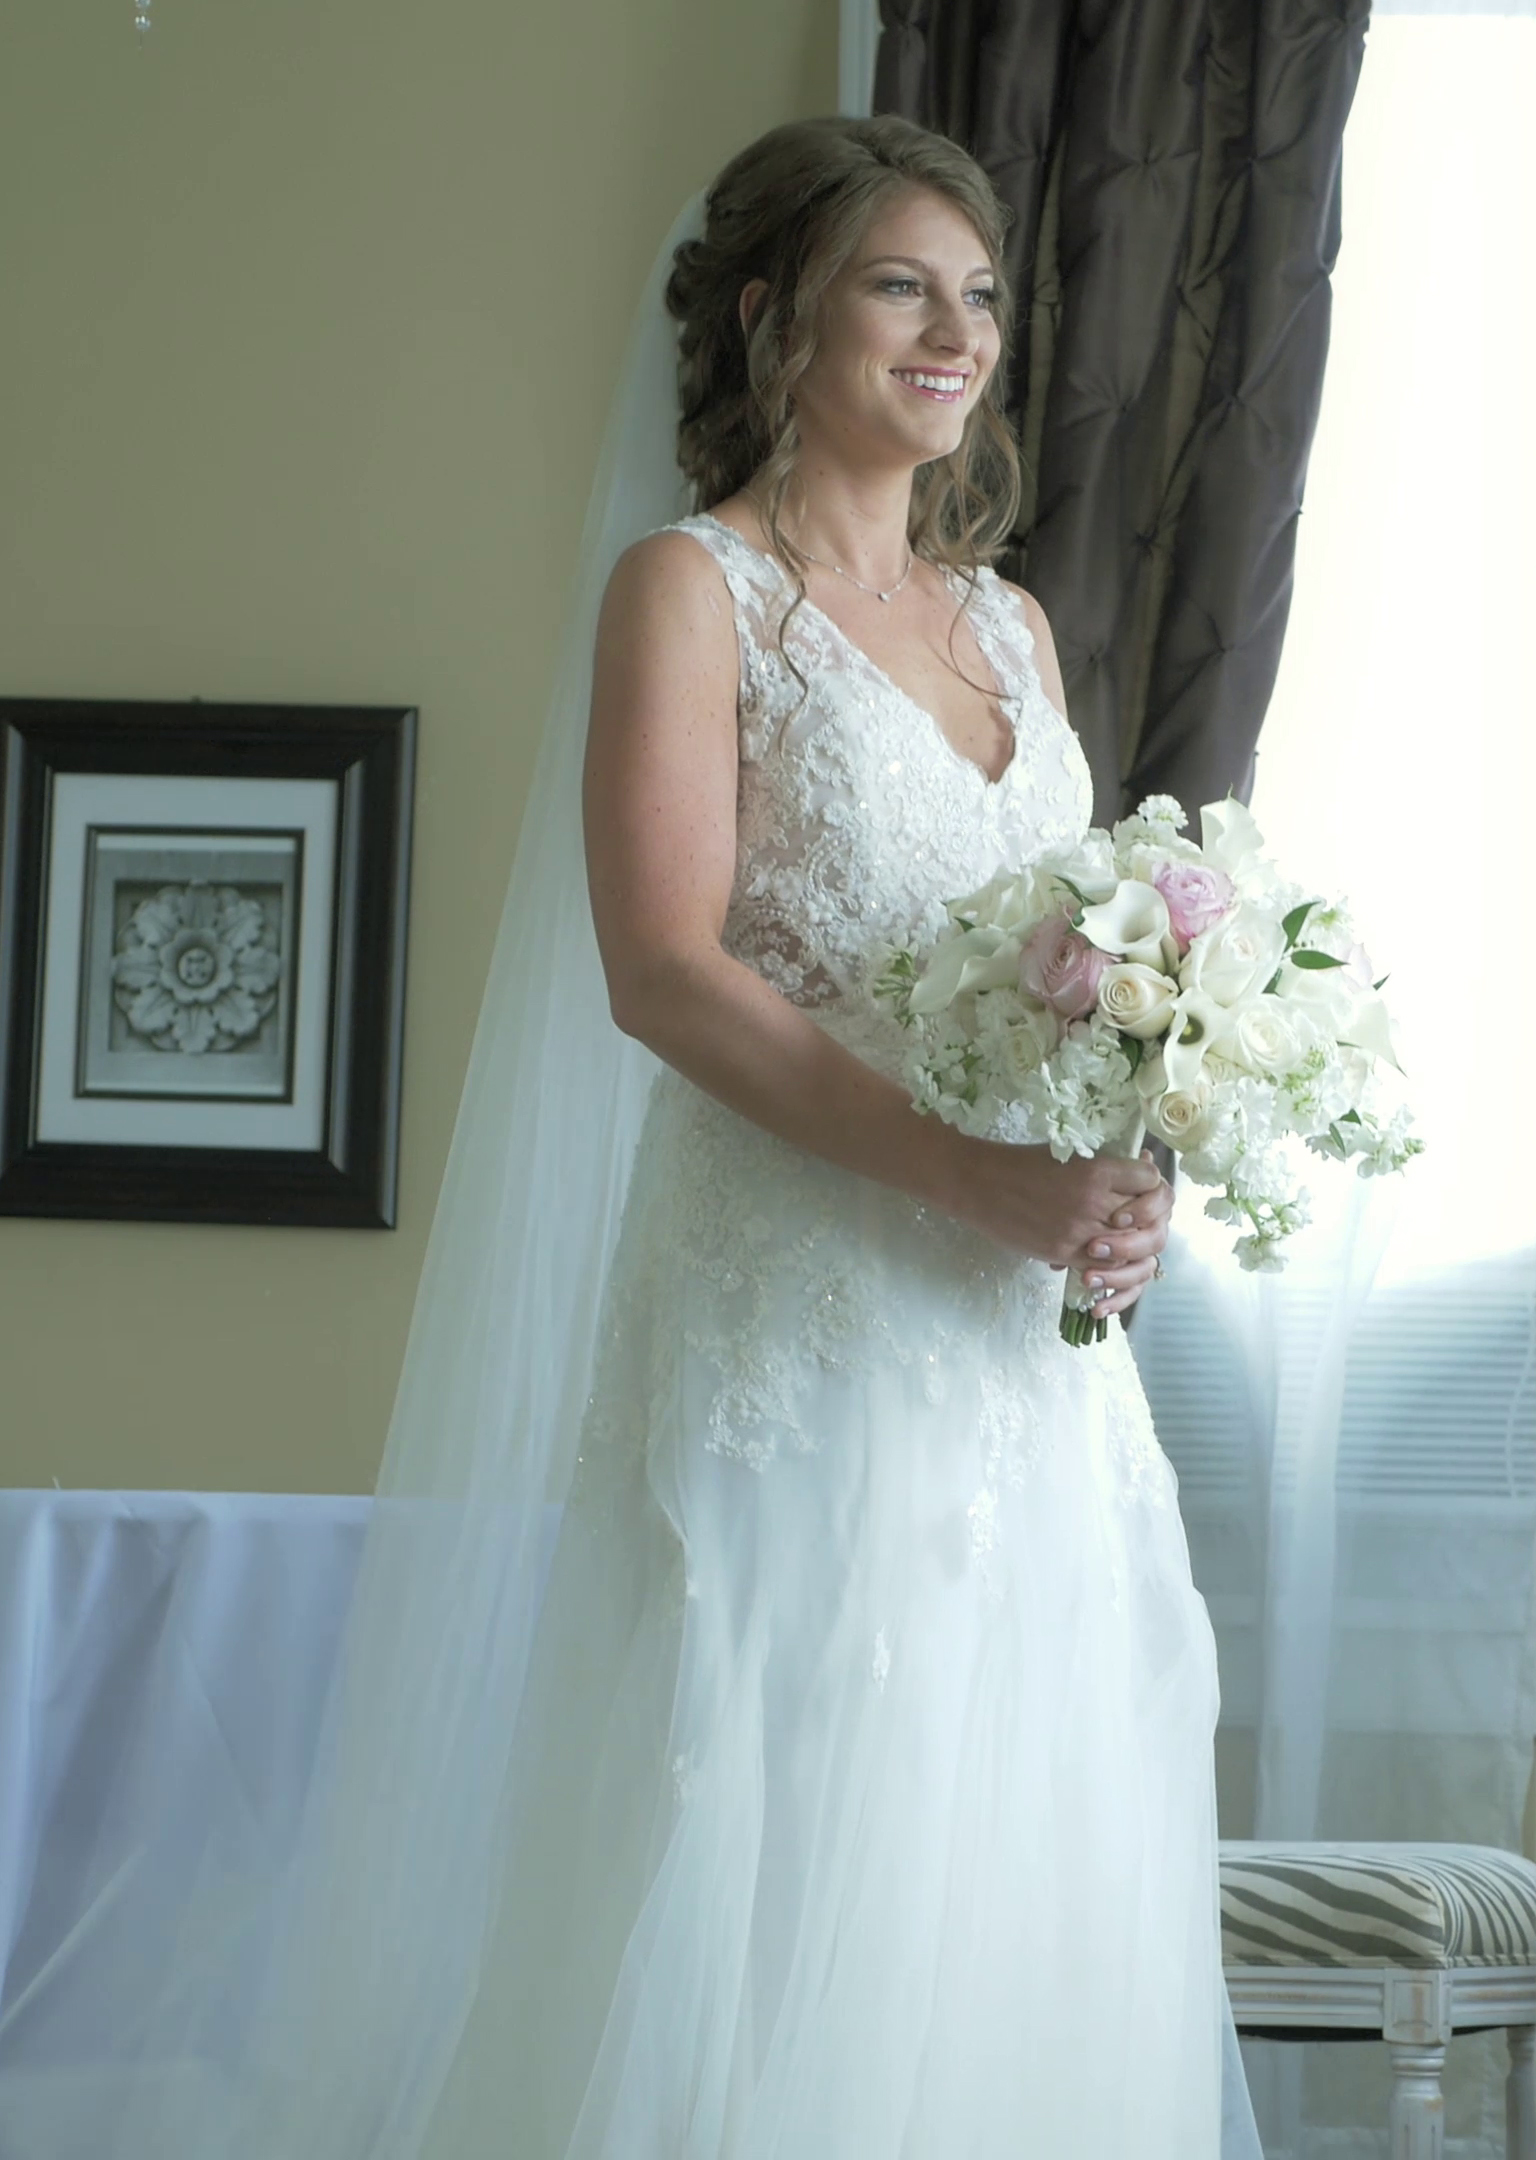 Affordable Wedding Videographers - The Cinema Factory